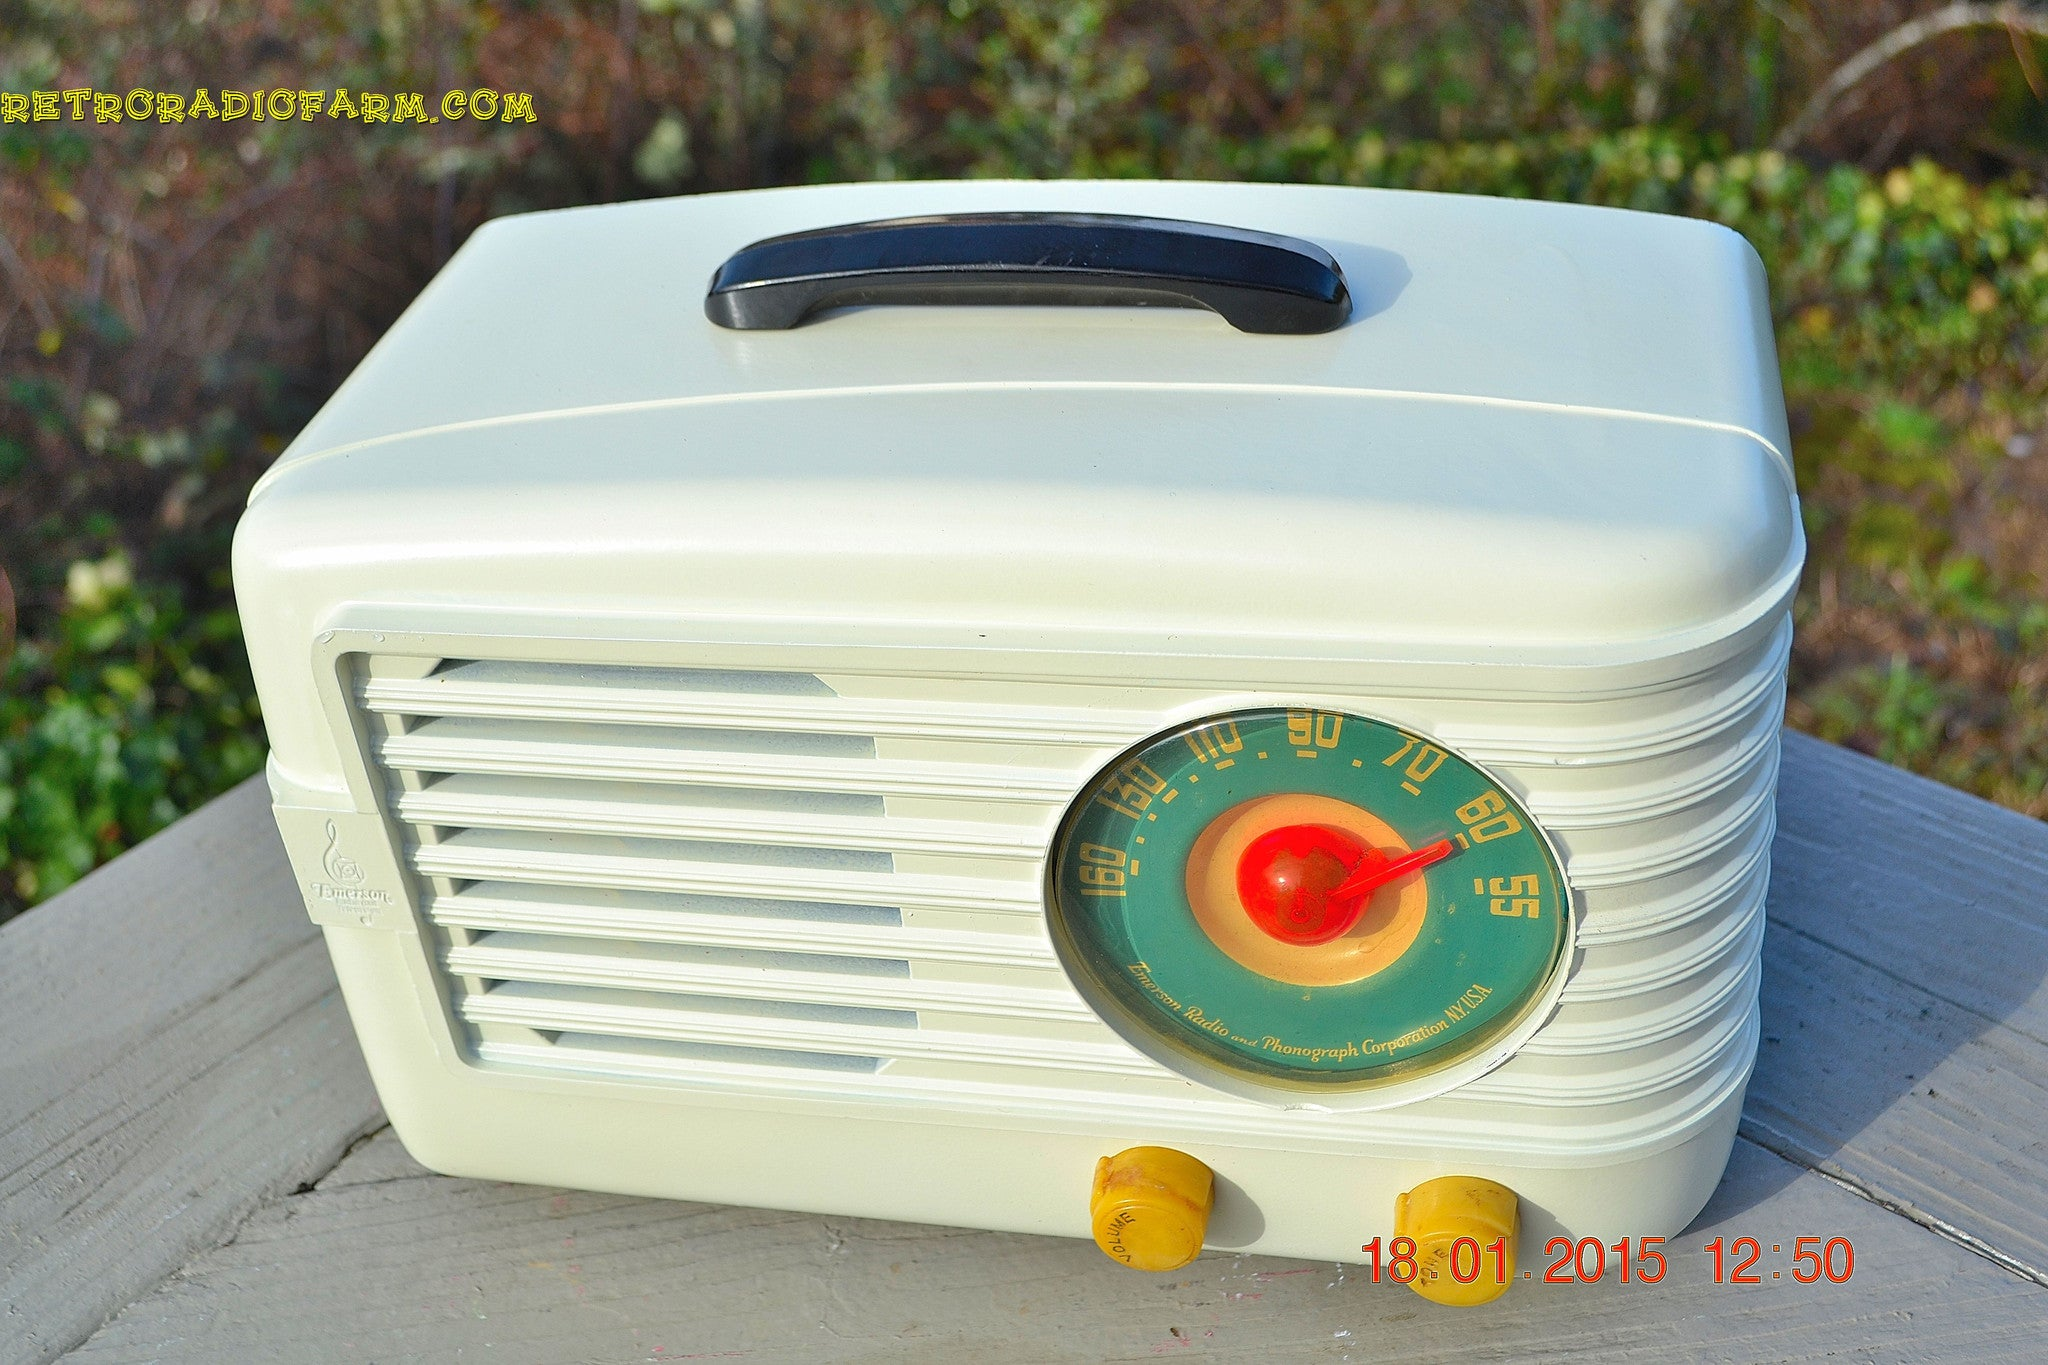 SOLD! - March 29, 2015 - BEAUTIFUL ART DECO Ivory Retro Vintage 1950 Emerson 642 Bakelite AM Tube Radio Totally Restored! , Vintage Radio - Emerson, Retro Radio Farm  - 1